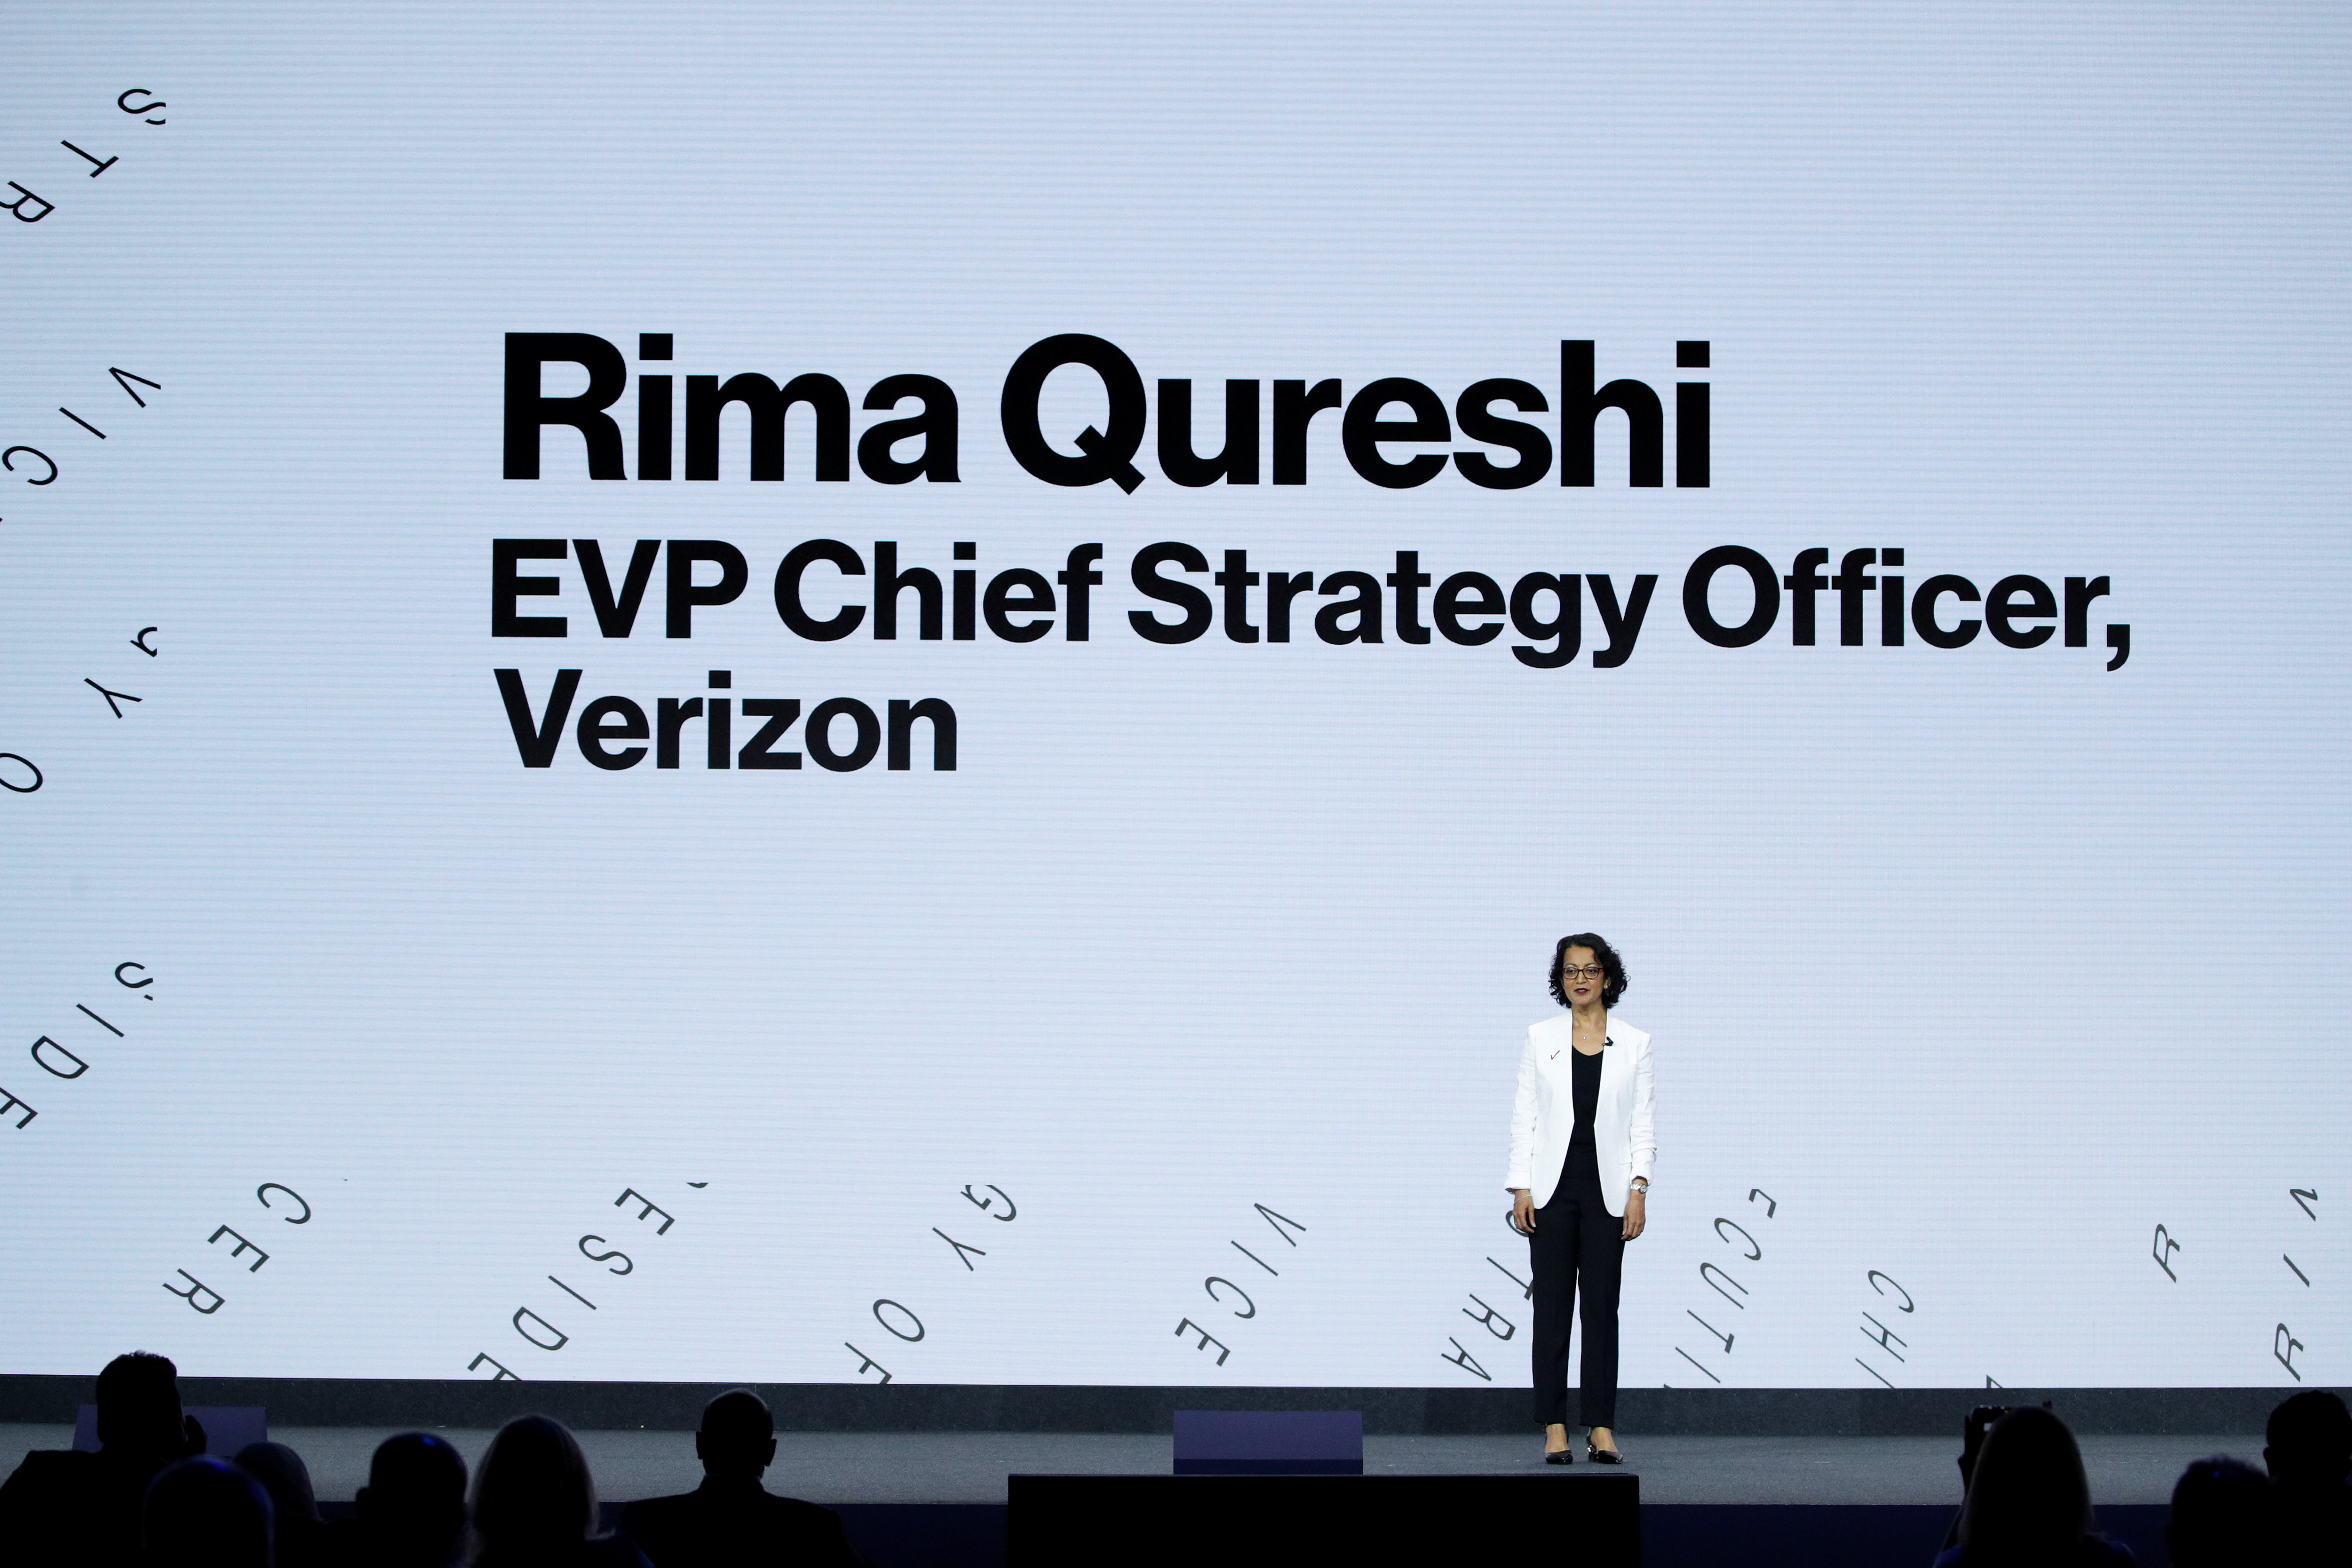 Rima Qureshi, EVP Chief Strategy Officer of Verizon, gives a speech during the Mobile World Congress (MWC) in Barcelona, Spain, June 28, 2021. REUTERS/Albert Gea